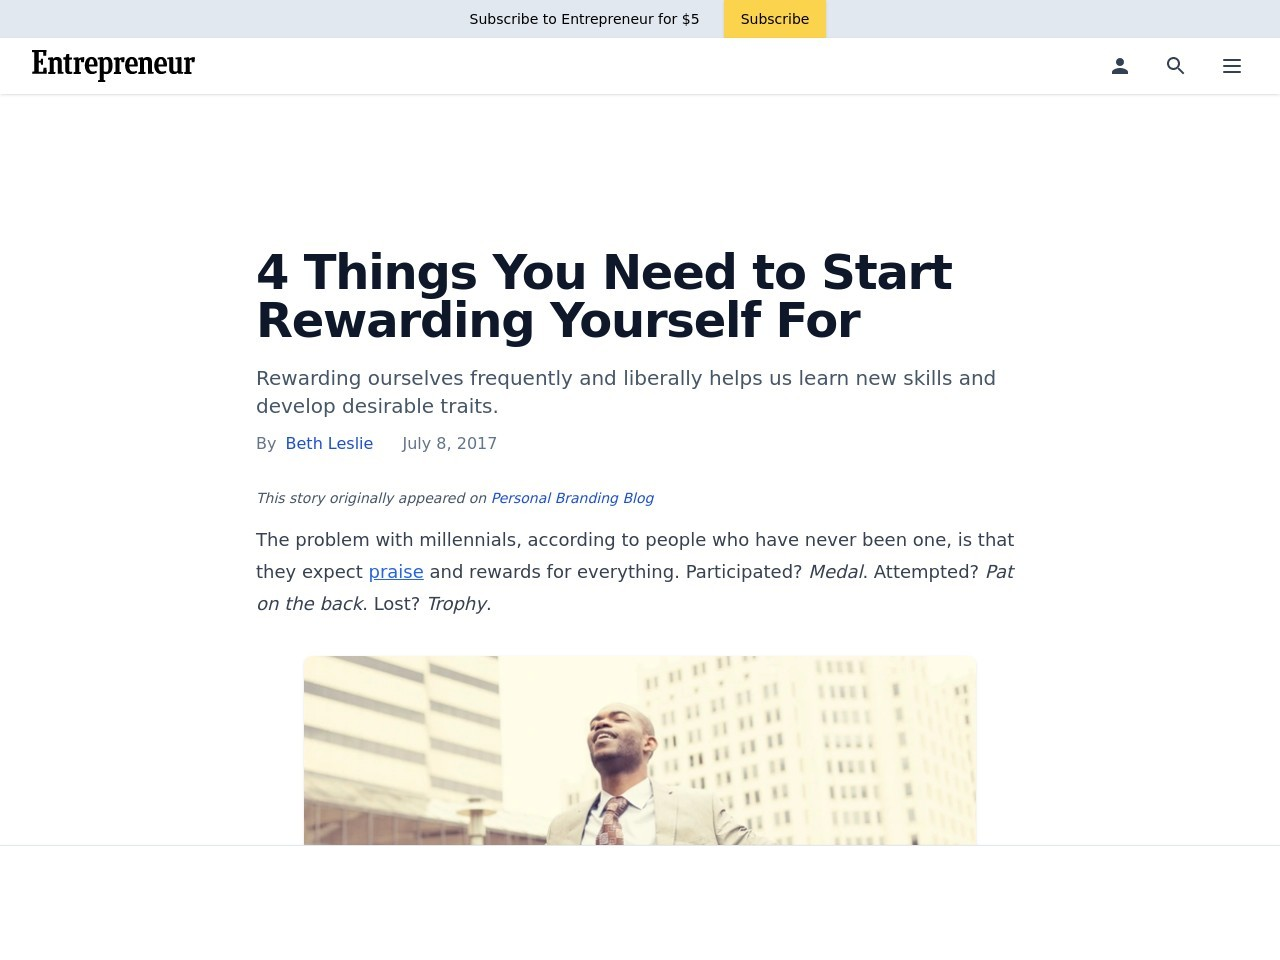 4 Things You Need to Start Rewarding Yourself For